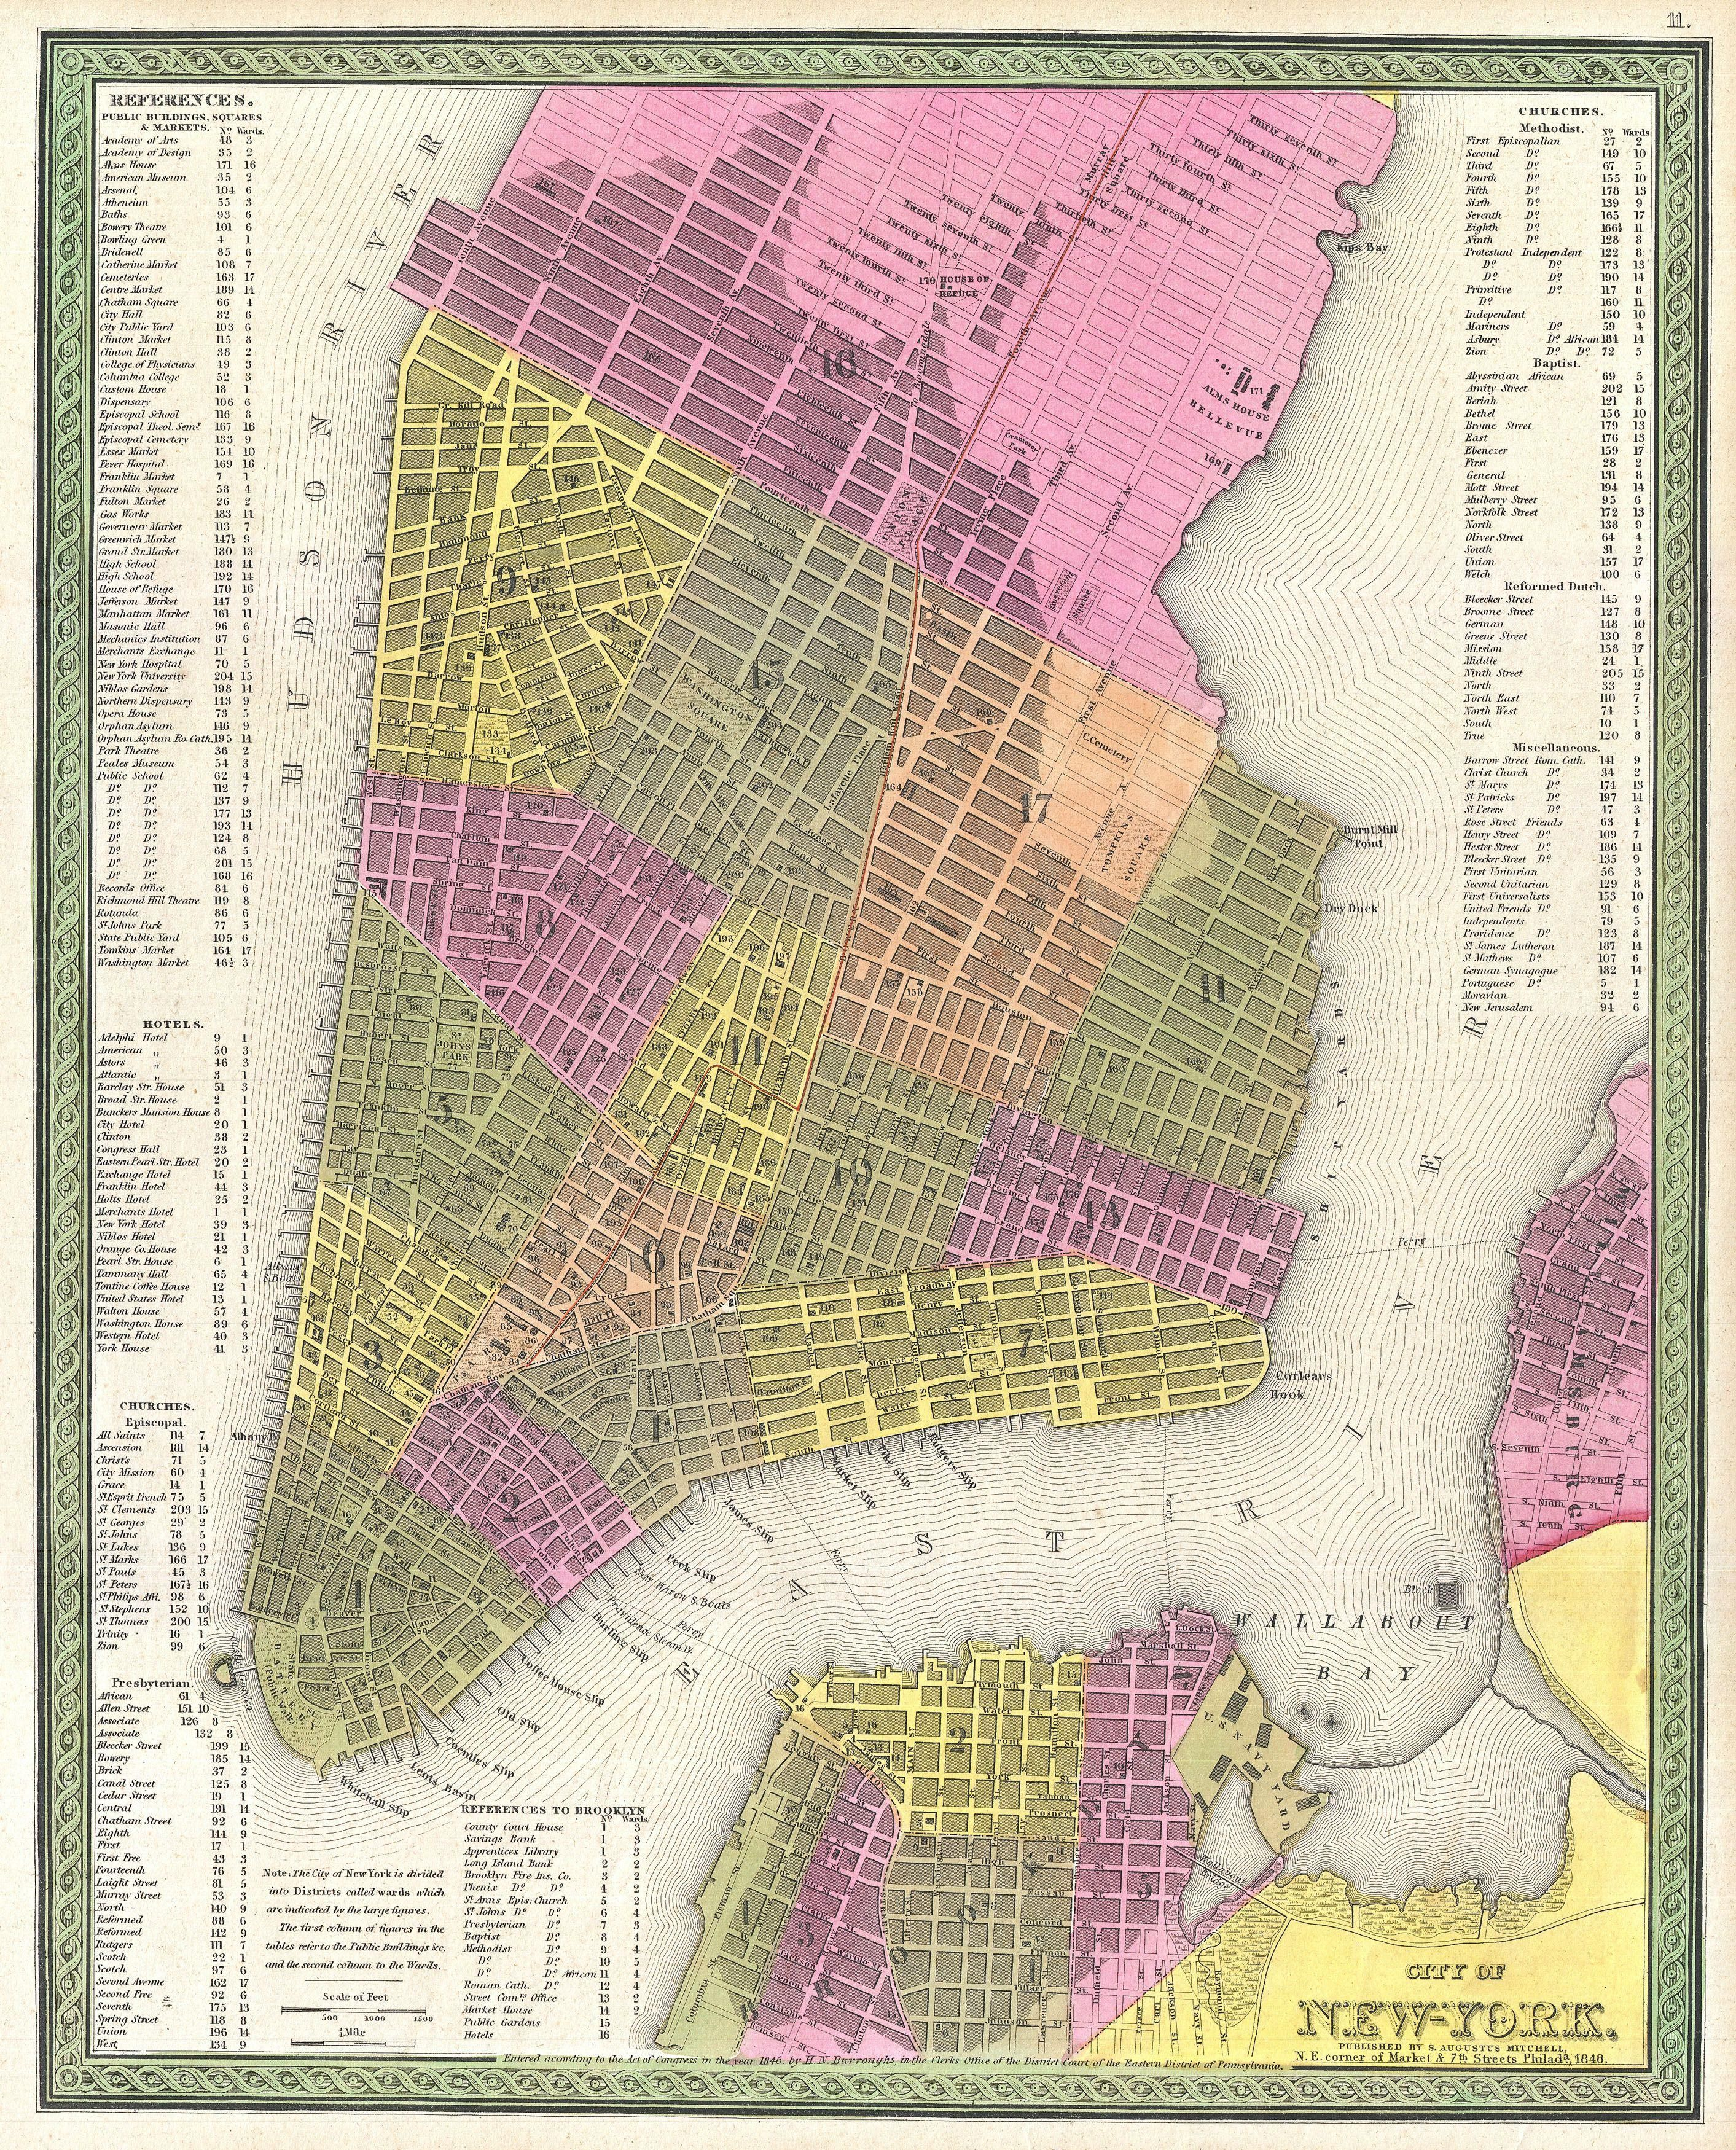 Gorgeous 1848 map of New York City Interesting history stuff